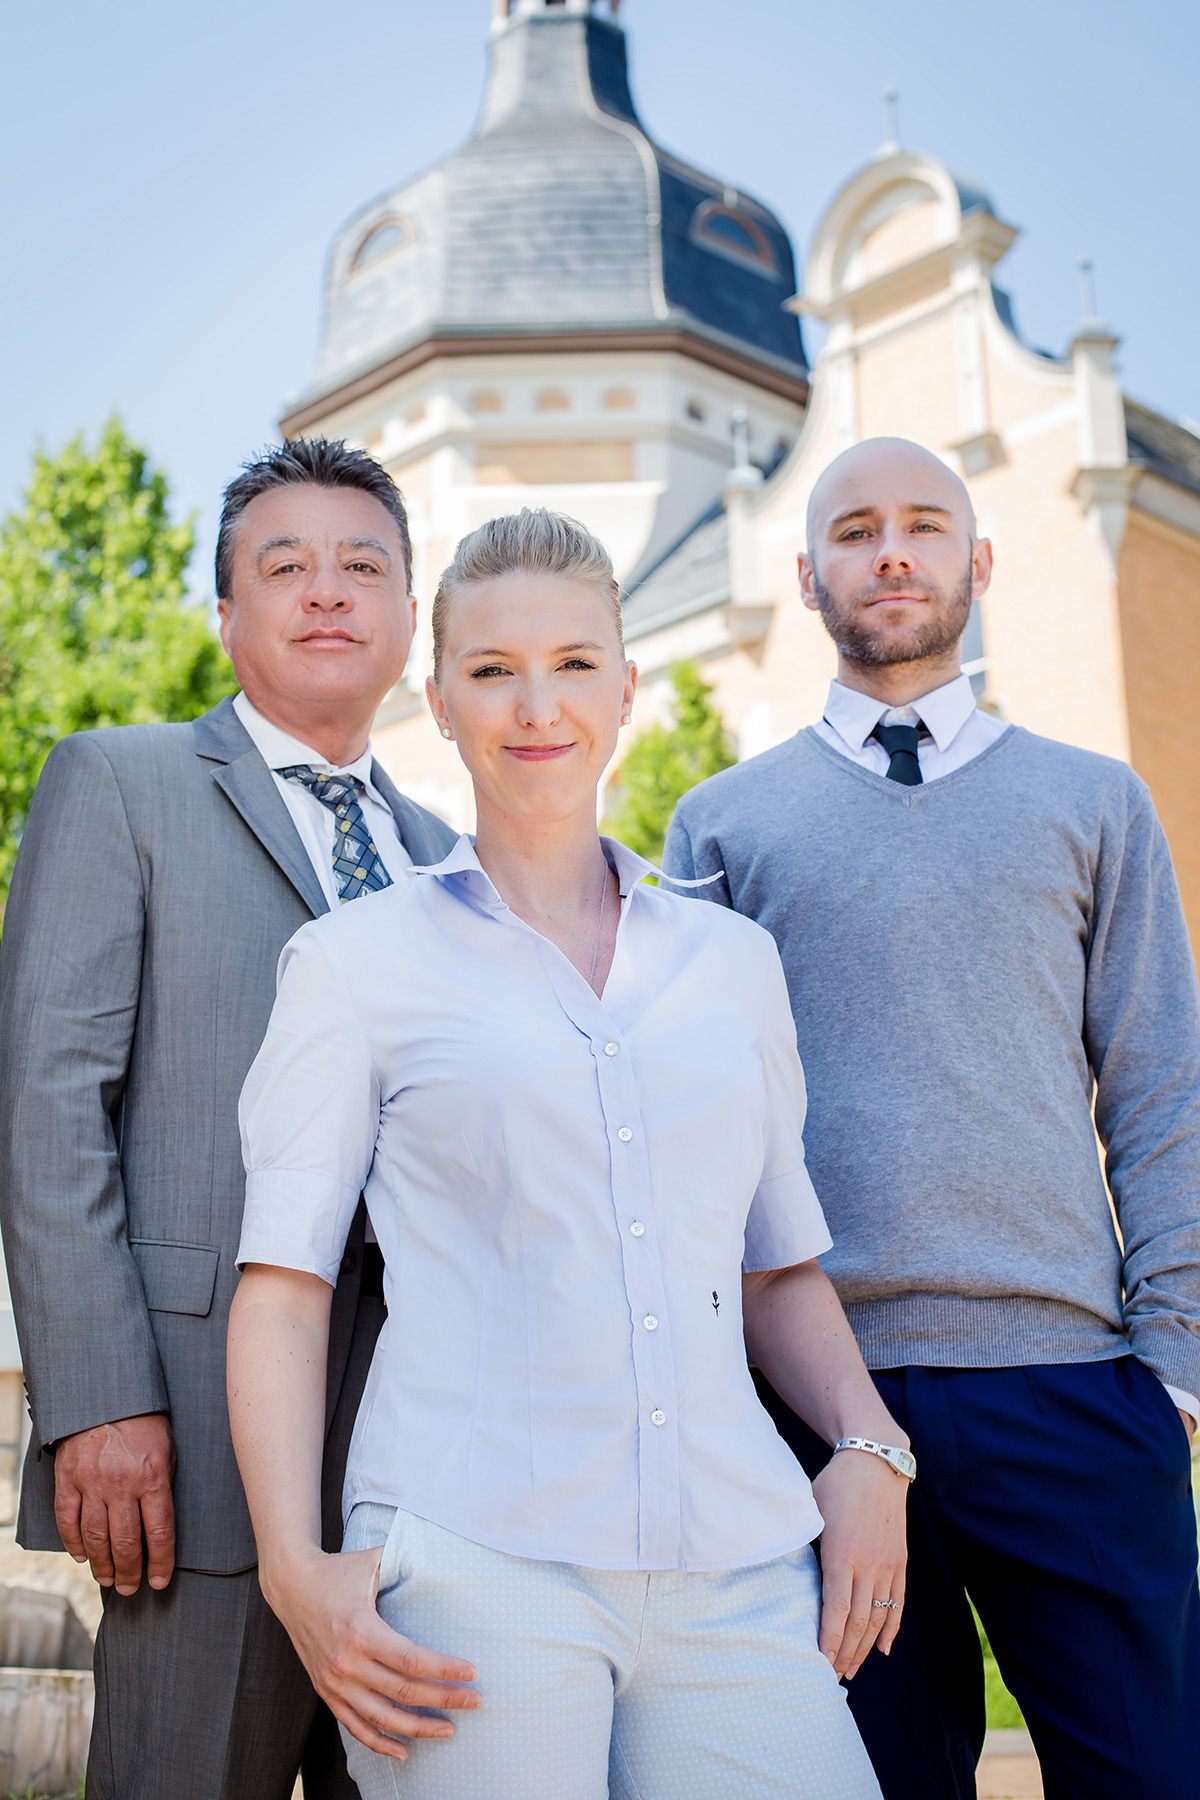 Imageshooting, Immobilien, Portrait, Team